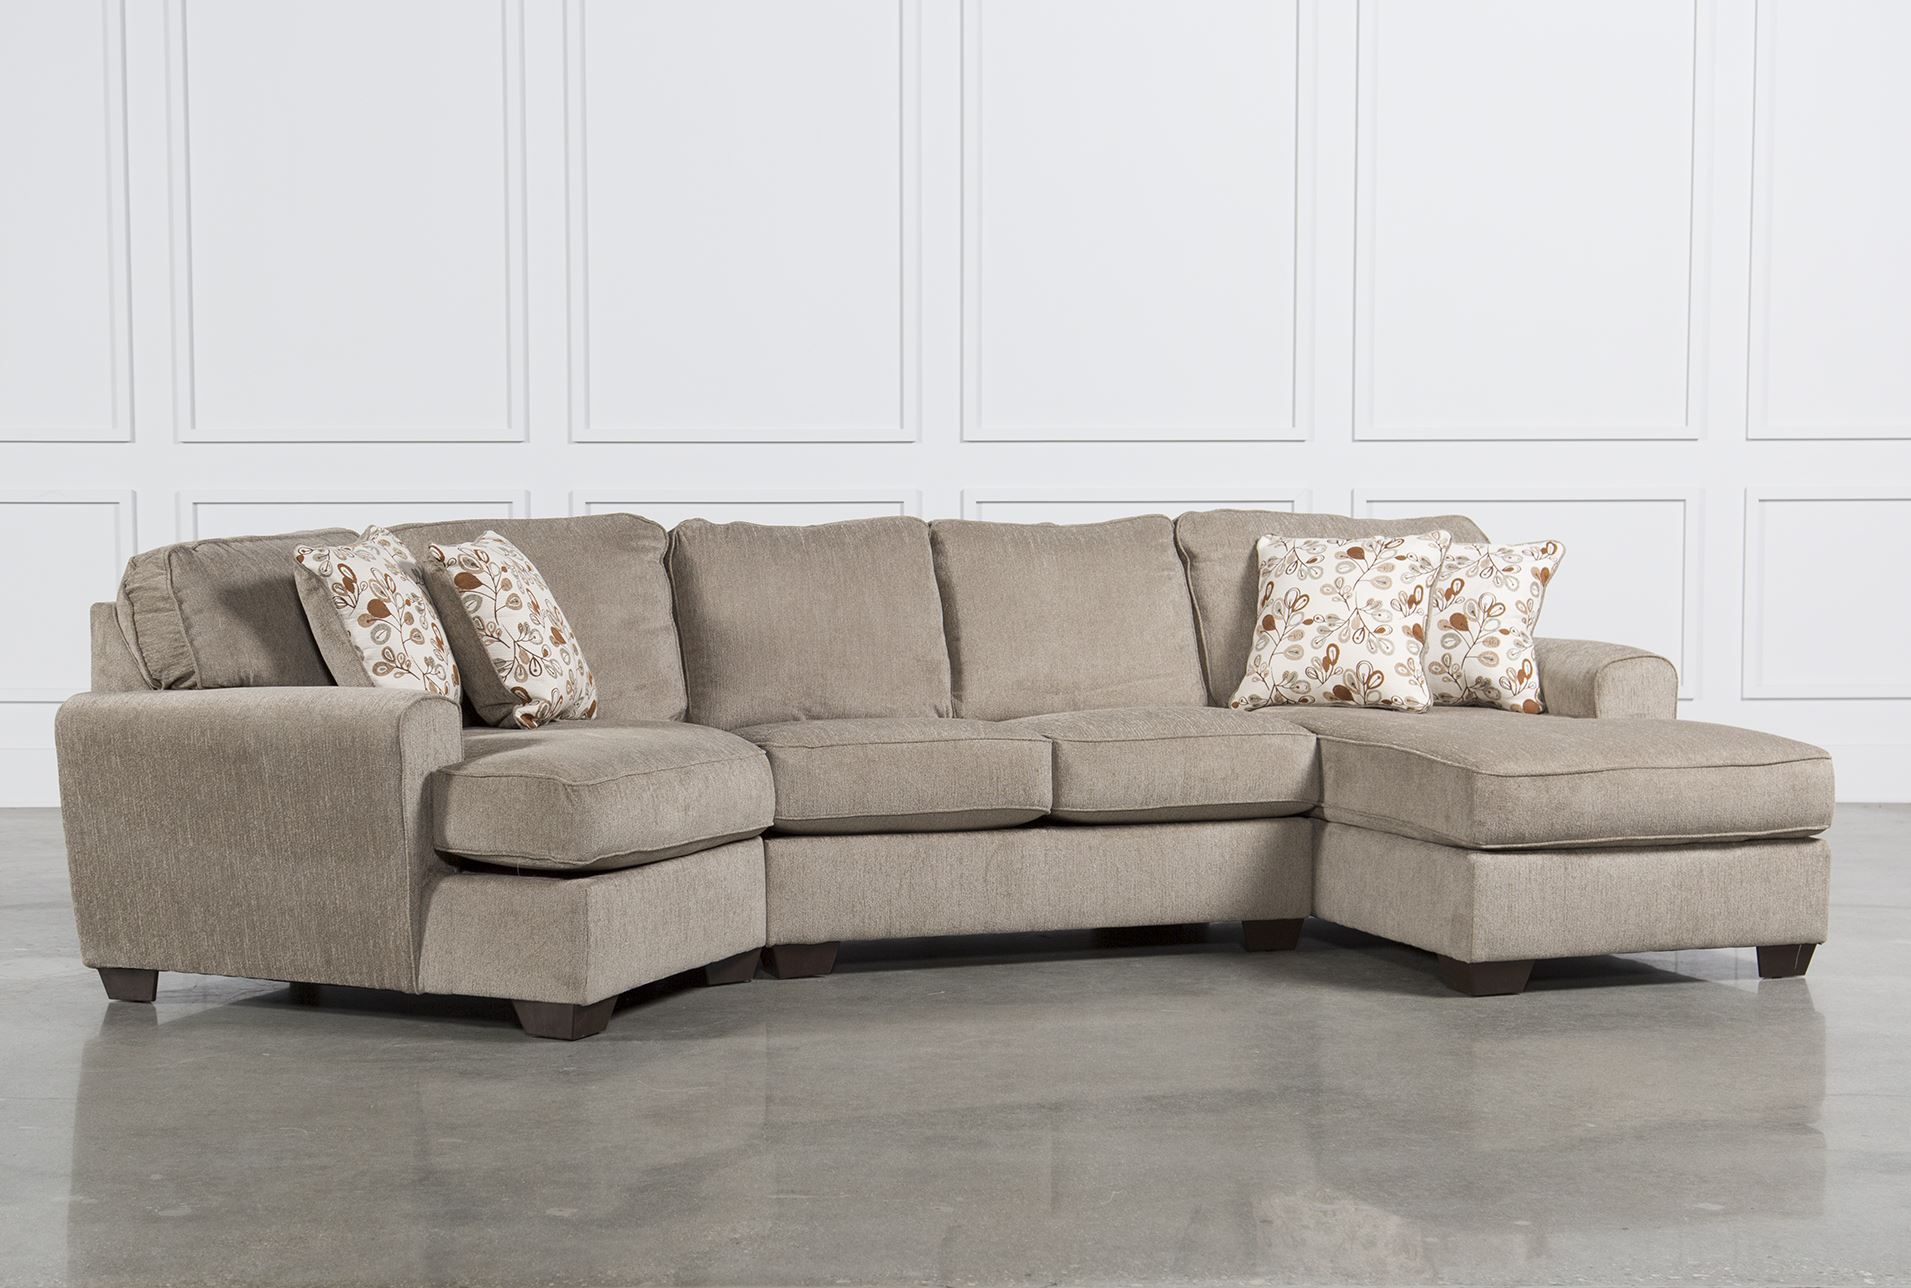 Cuddler Sectional Sofa Canada Bianca Jennifer Convertibles Fresh